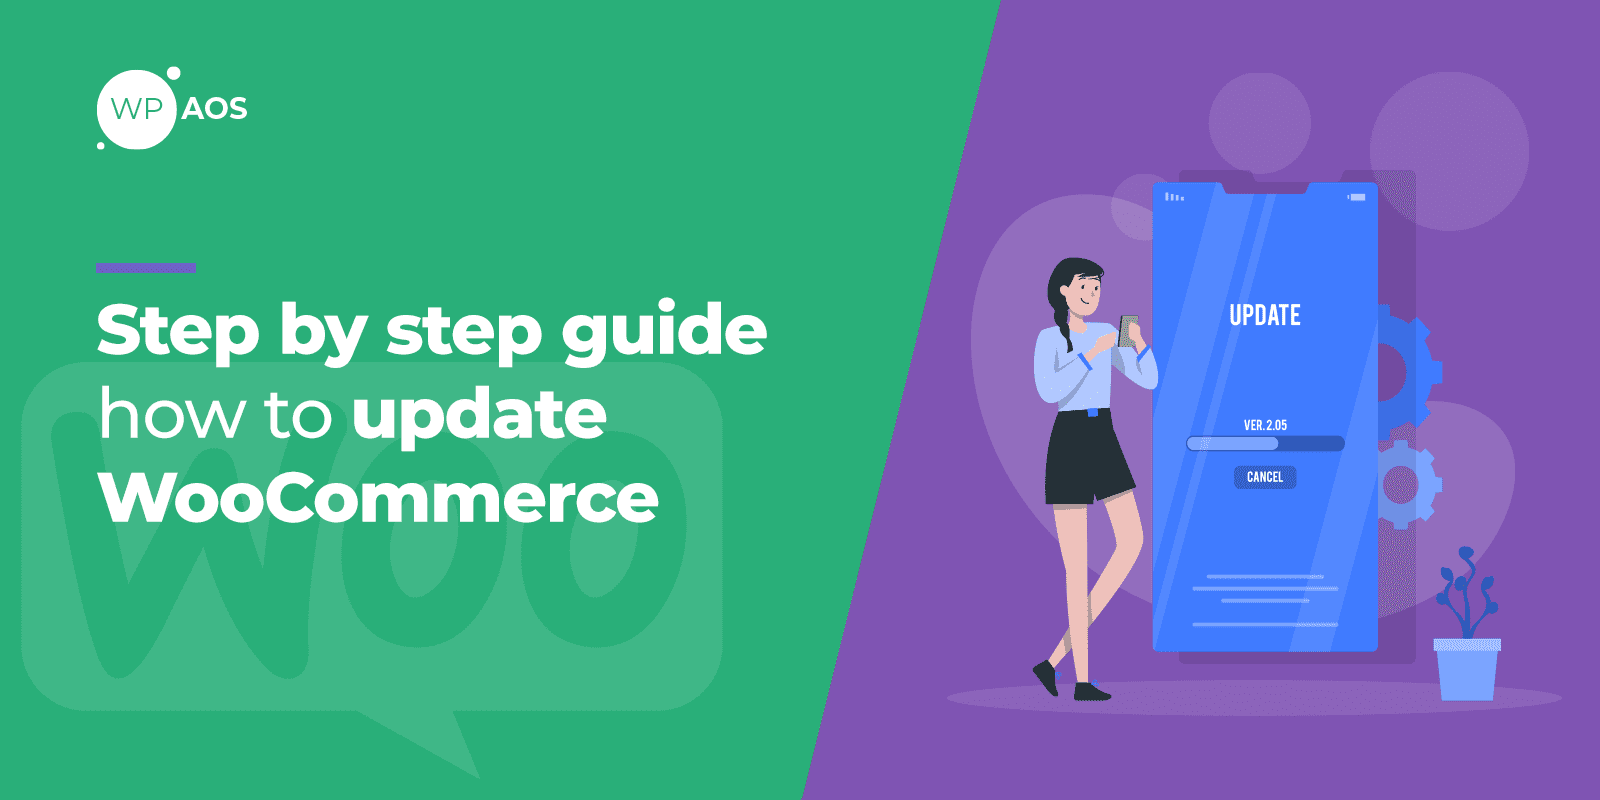 step-by-step-guide-how-to-update-woocommerce